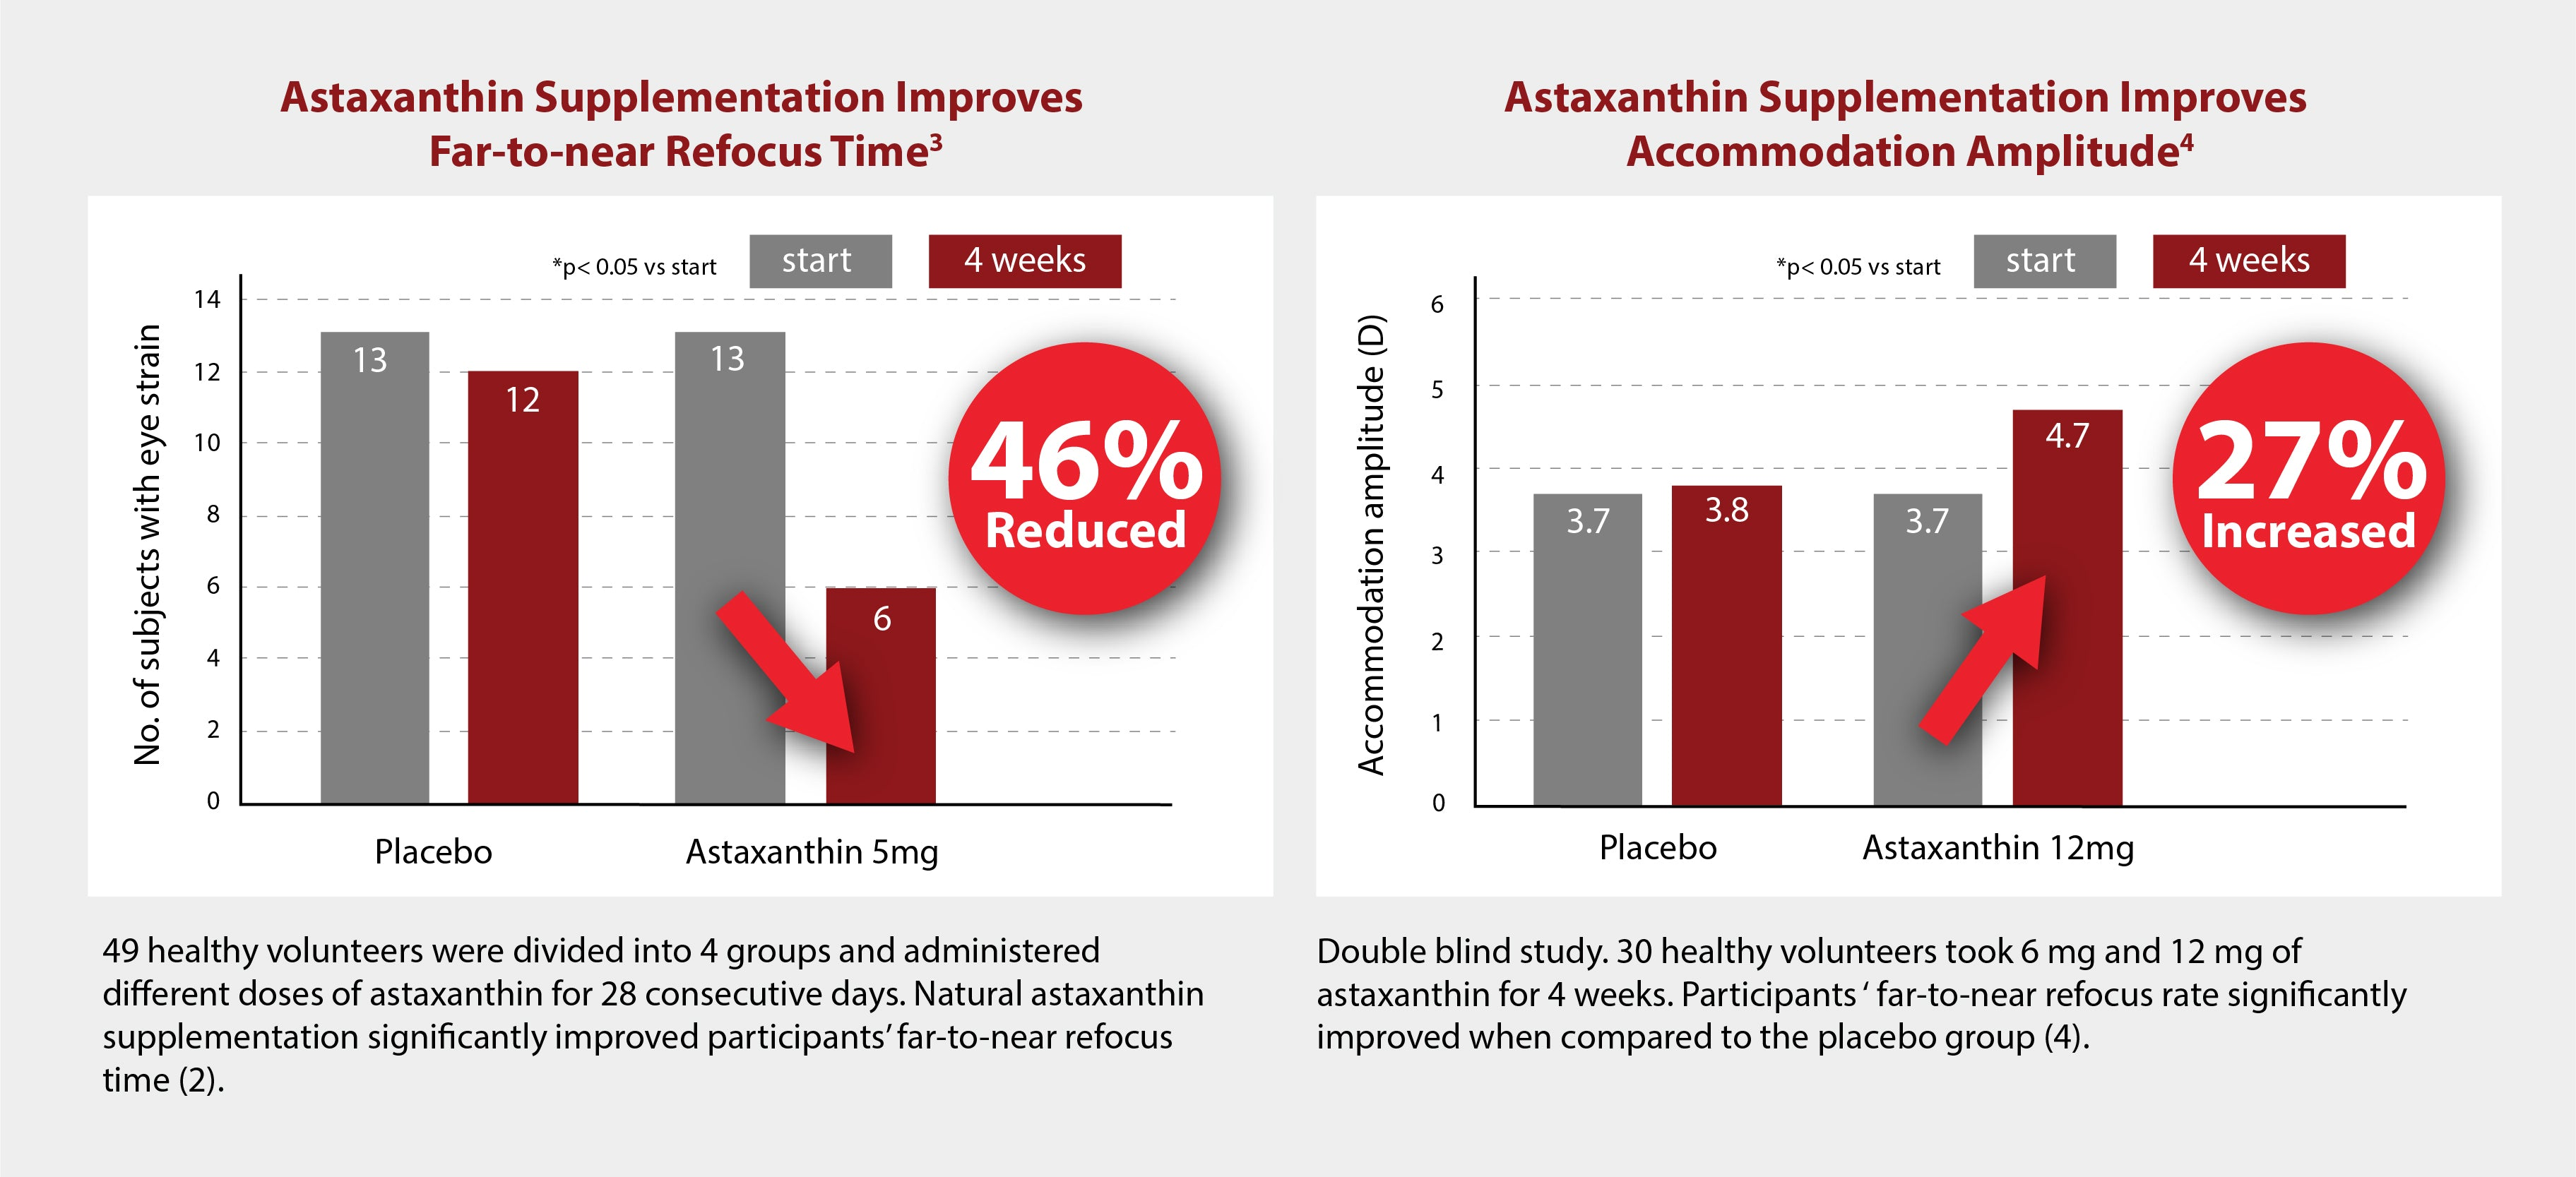 Astaxanthin improves far-to-near refocus time and accommodation amplitude